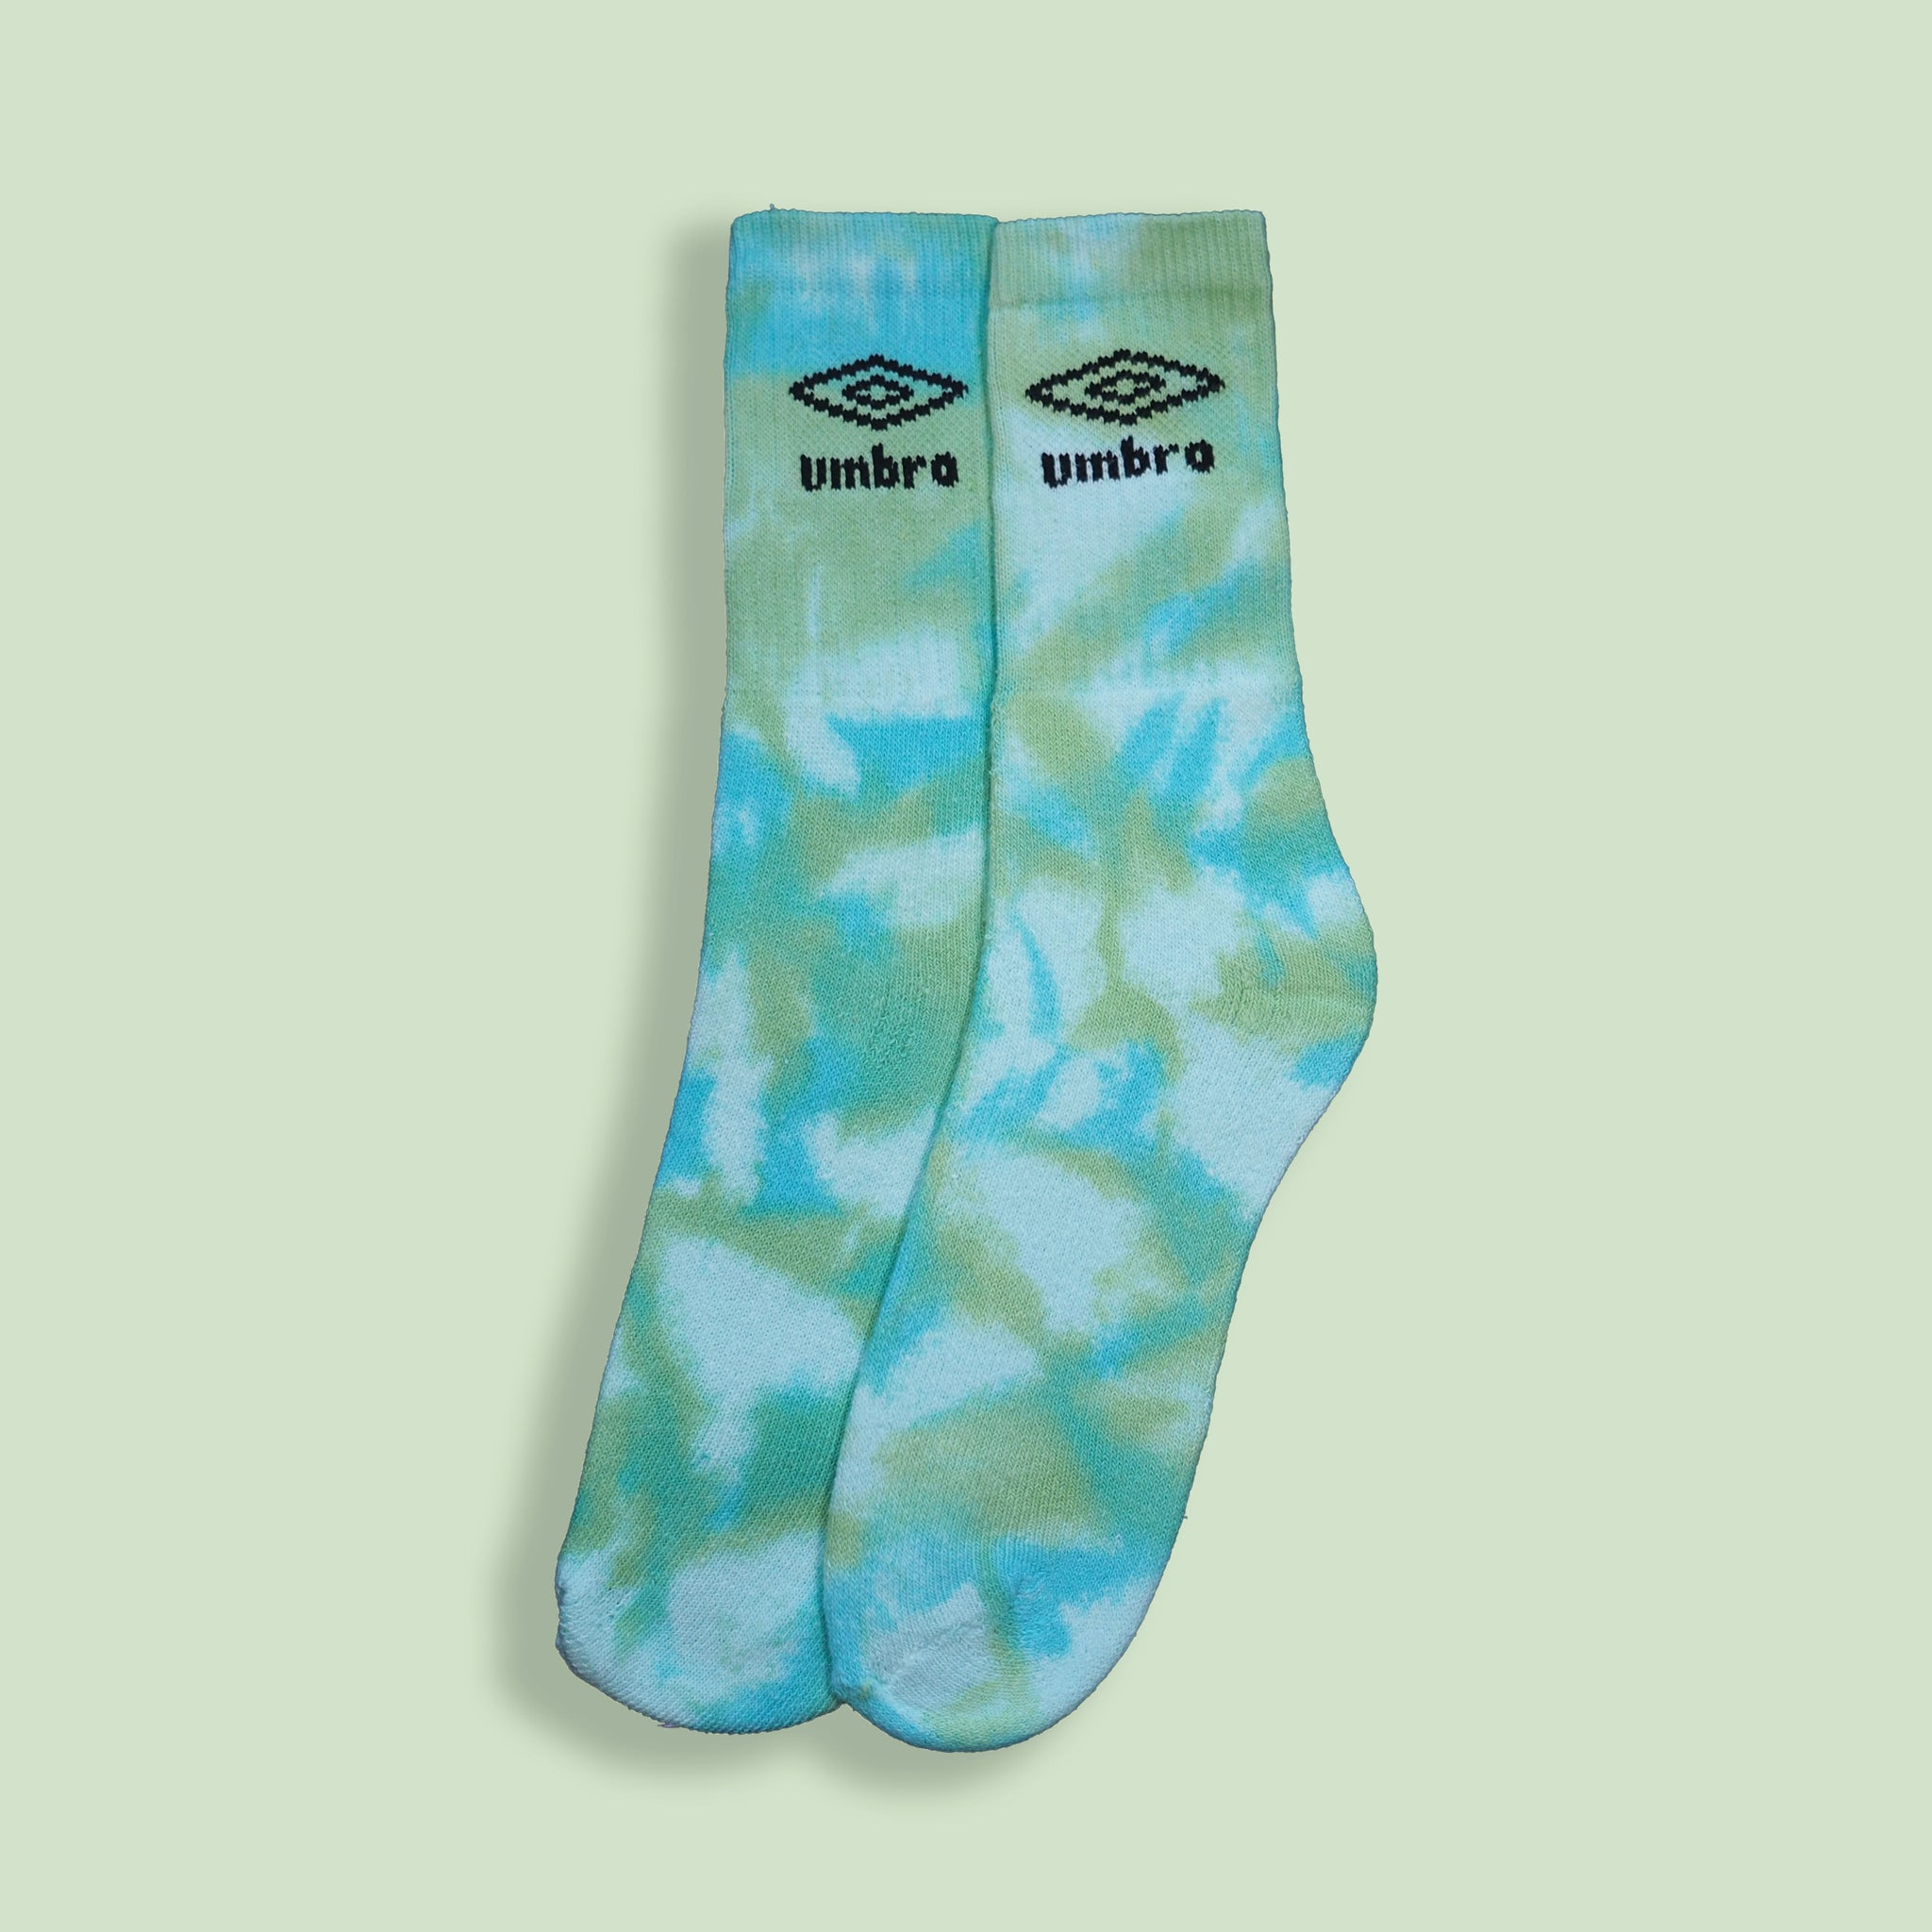 Umbro Socks Tie Dye Blue & Green Medium